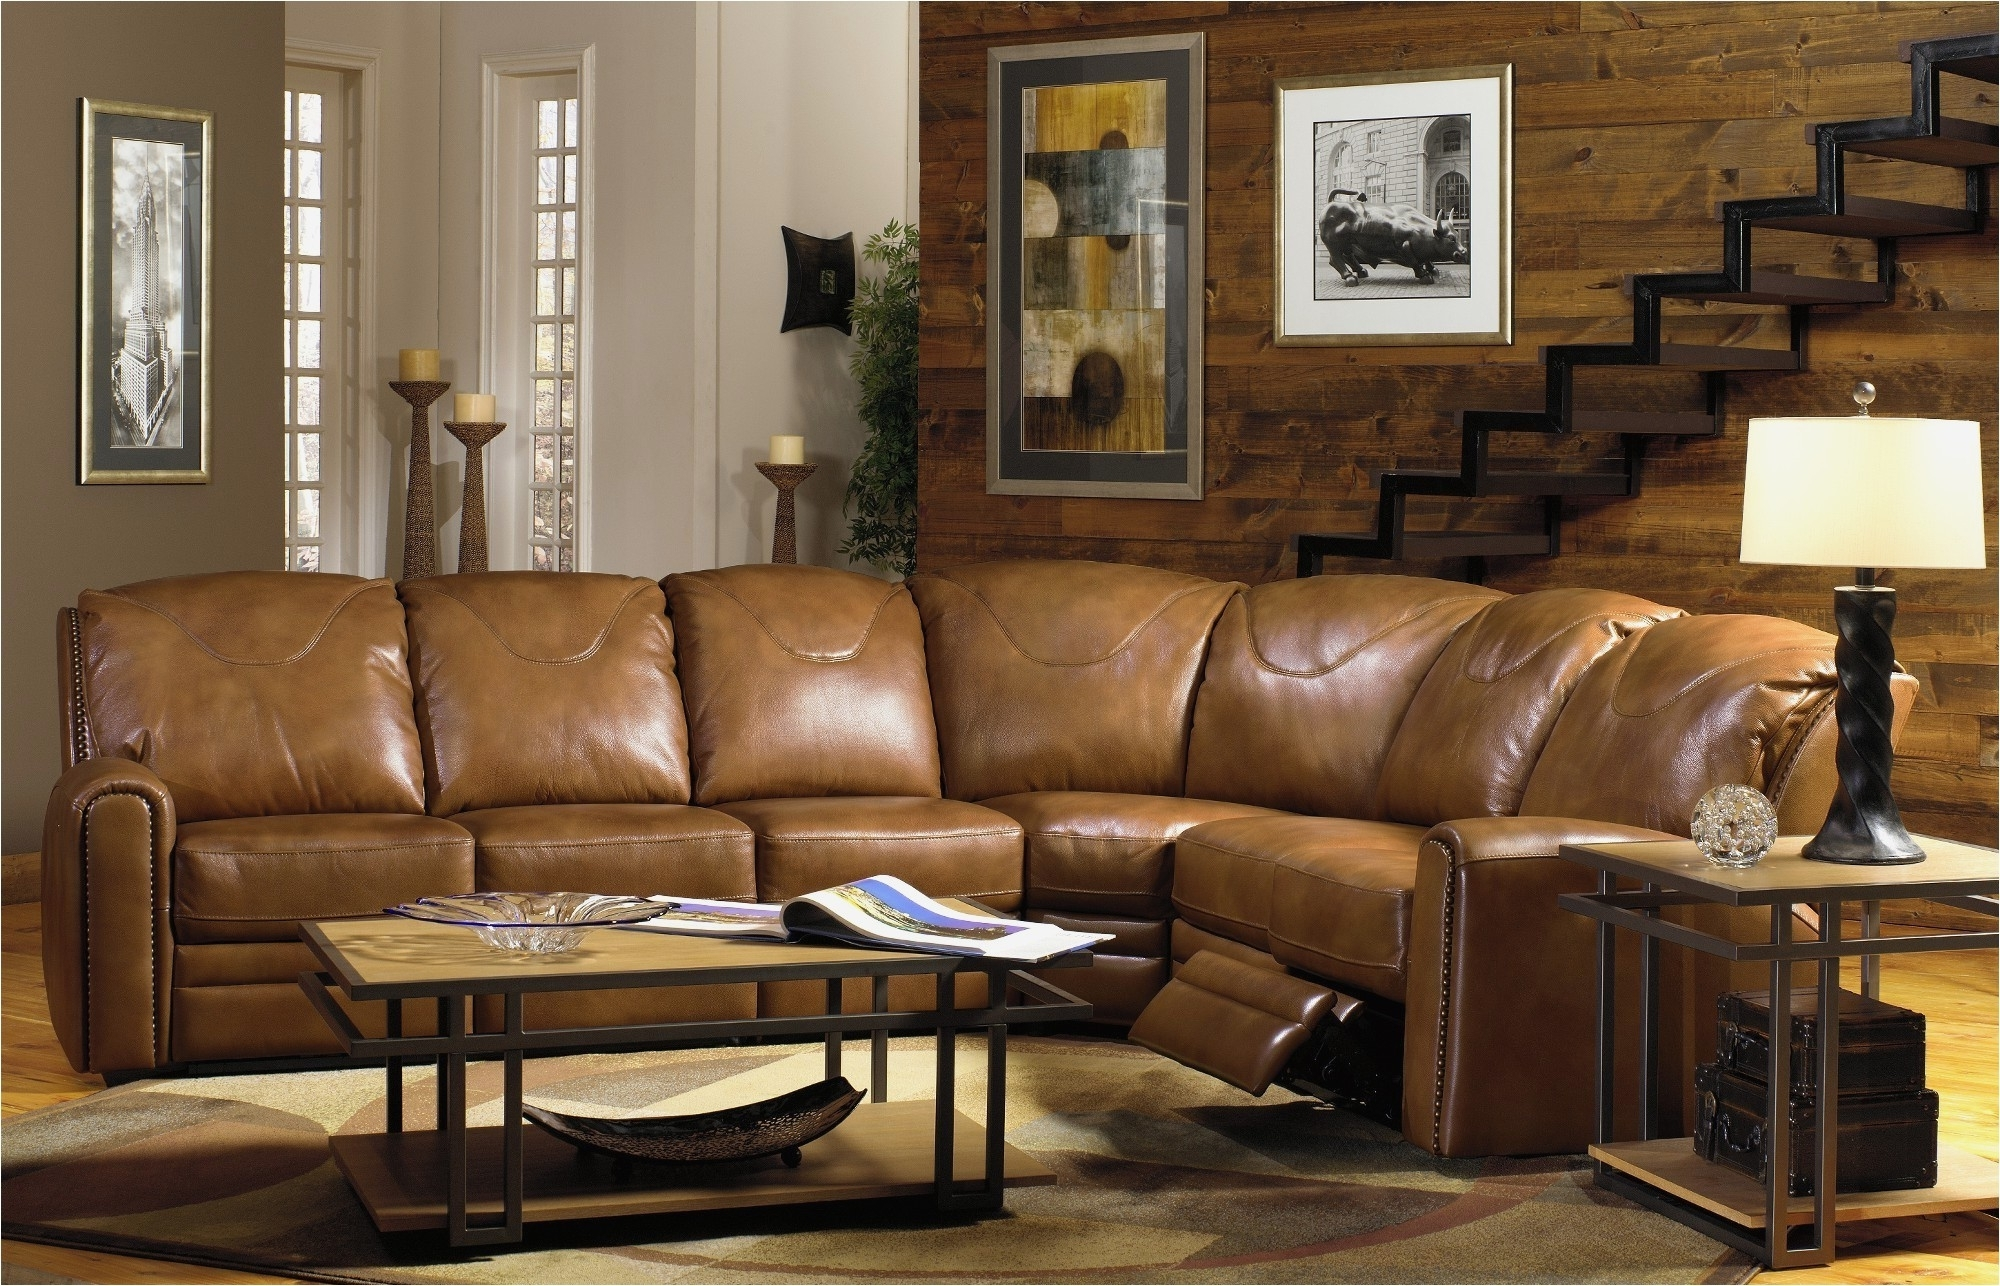 Modern Loveseat For Small Spaces Awesome Sofa Small Space Saving Throughout Recent Sectional Sofas For Small Spaces With Recliners (View 3 of 20)